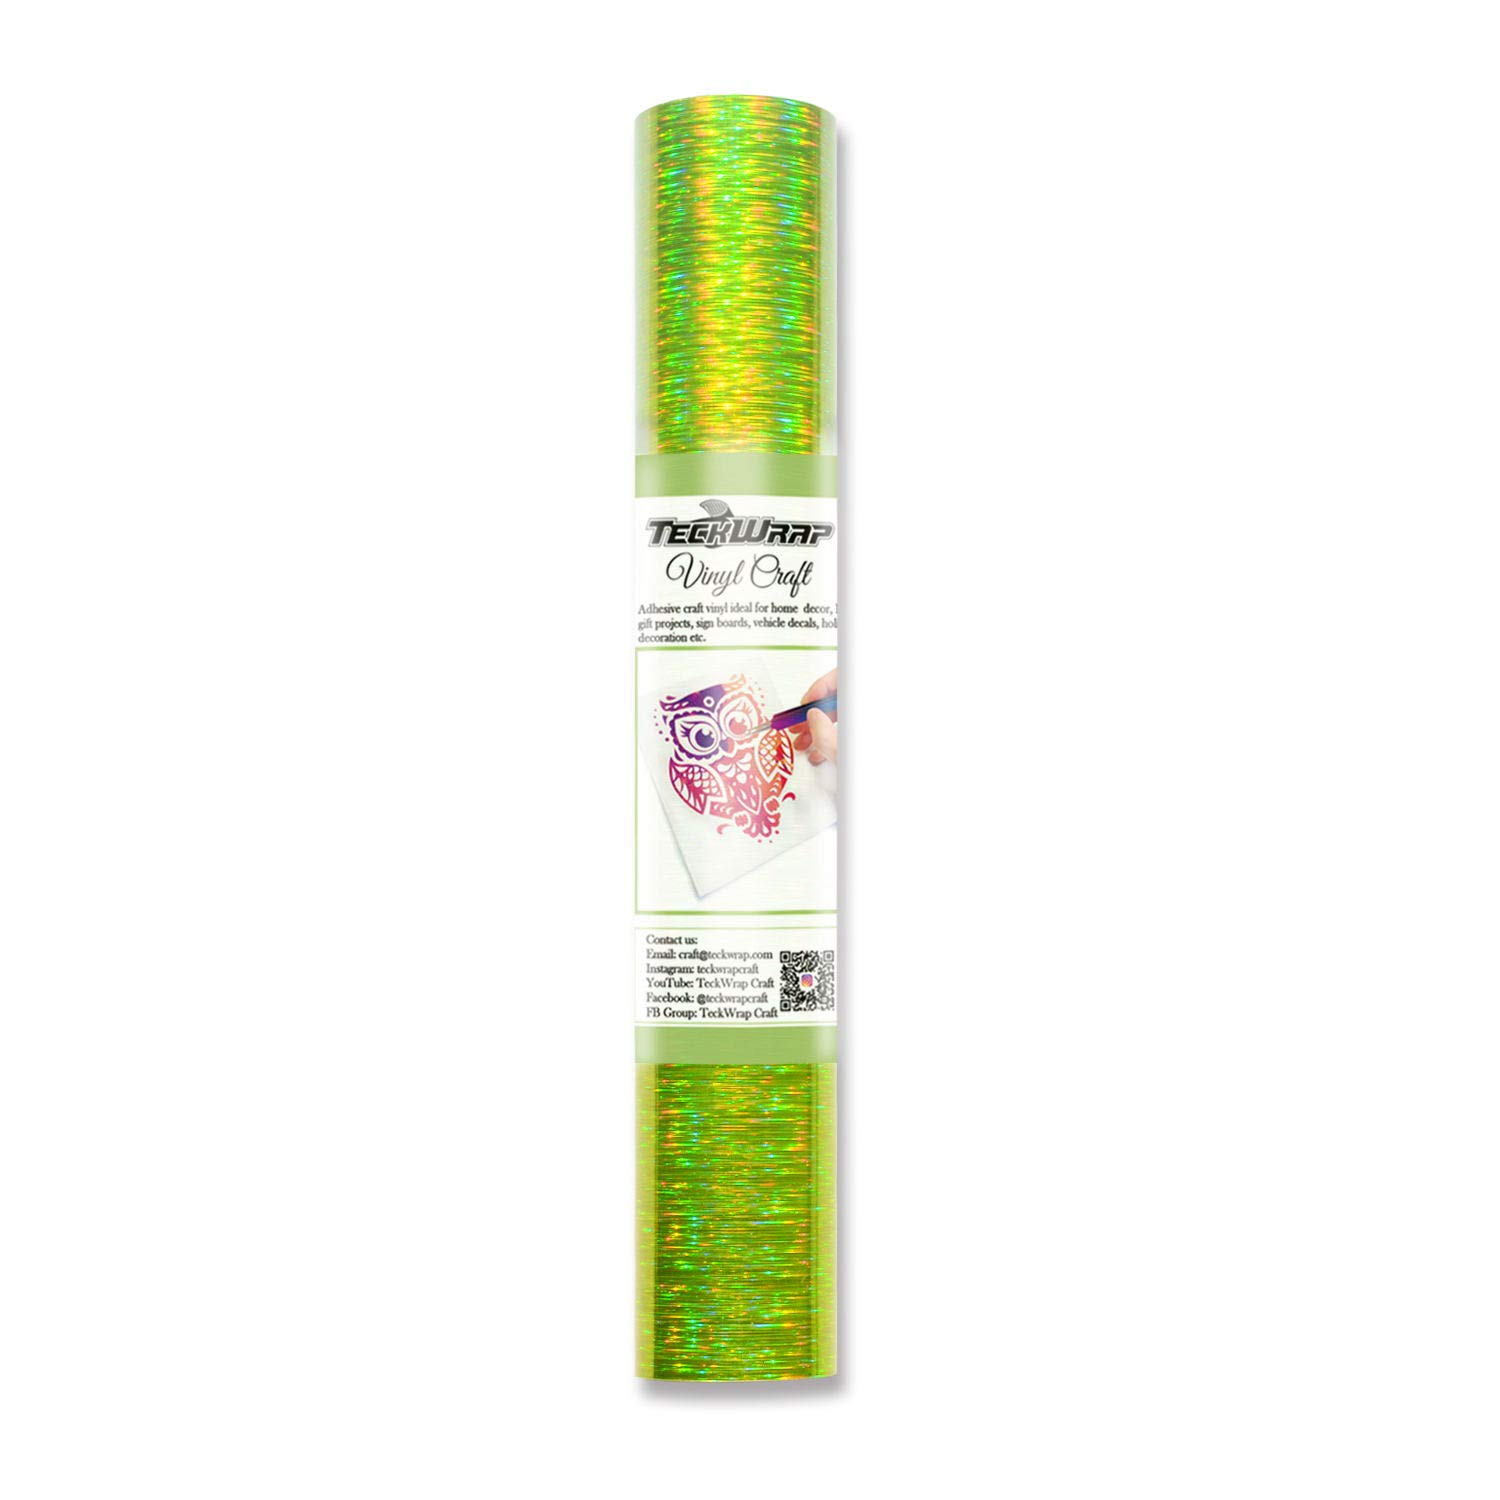 TECKWRAP Holographic Starlight Adhesive Vinyl,1ftx5ft,Lime Green